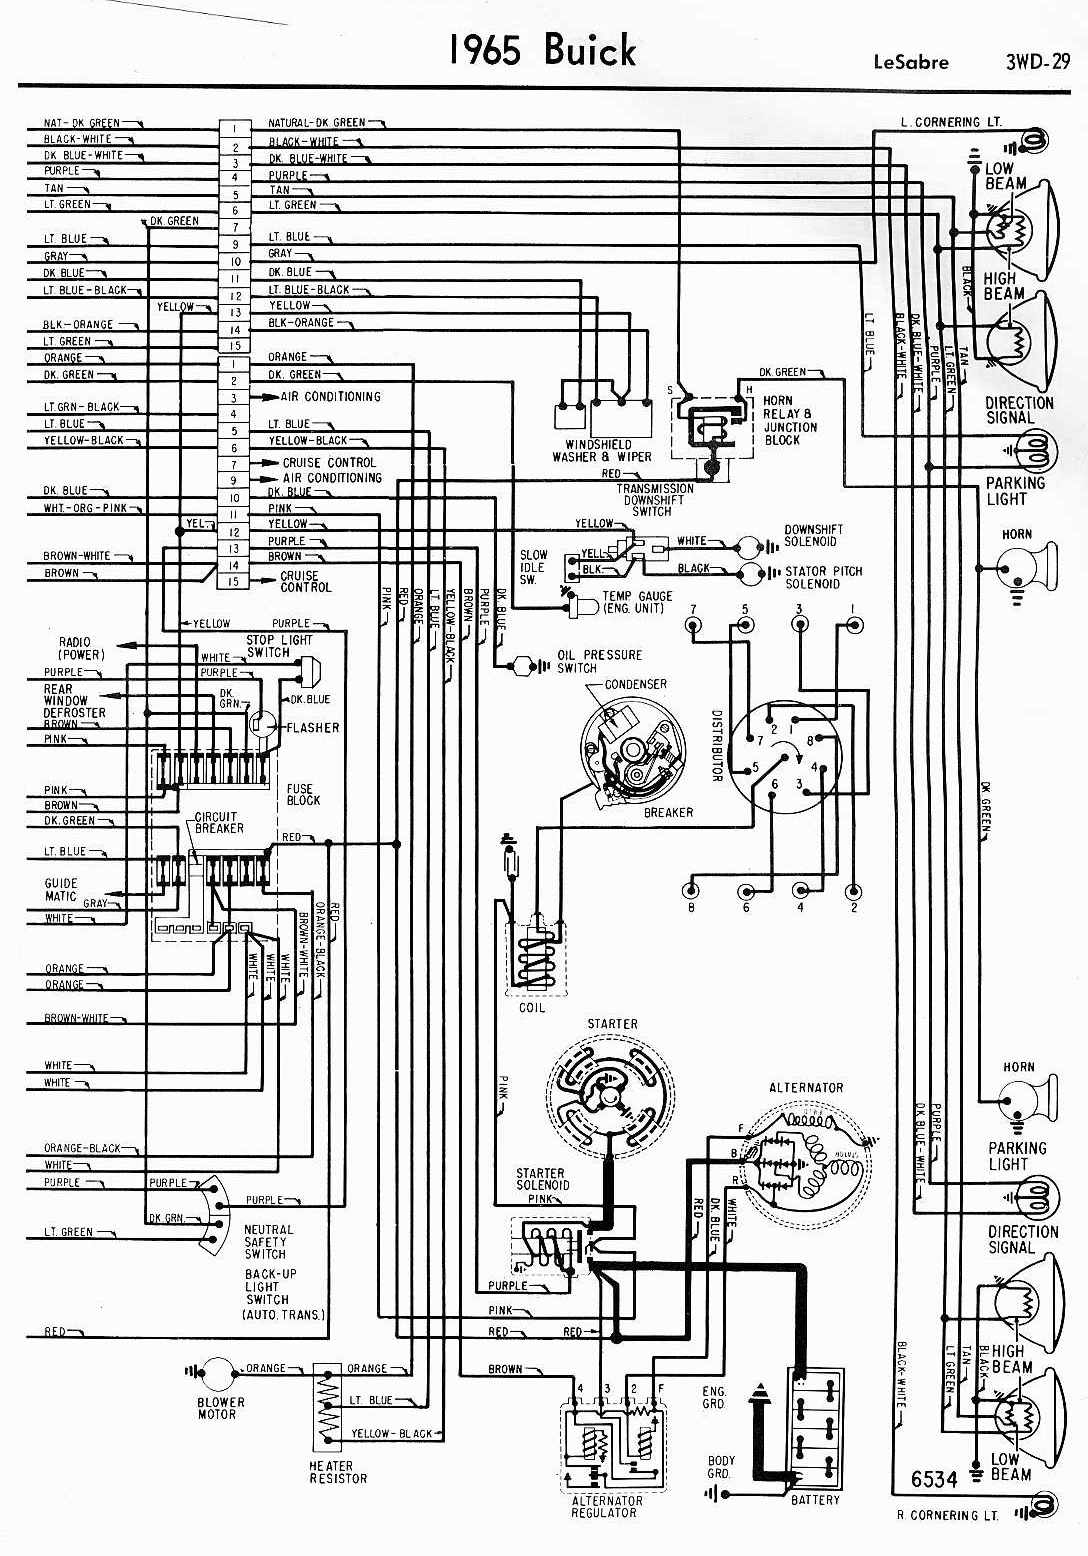 wiring diagram for 1965 buick lesabre?resize\\=665%2C951\\&ssl\\=1 1979 jeep cj7 electric choke wiring diagram 1982 jeep cj7 wiring cj7 wiring diagram pdf at gsmx.co